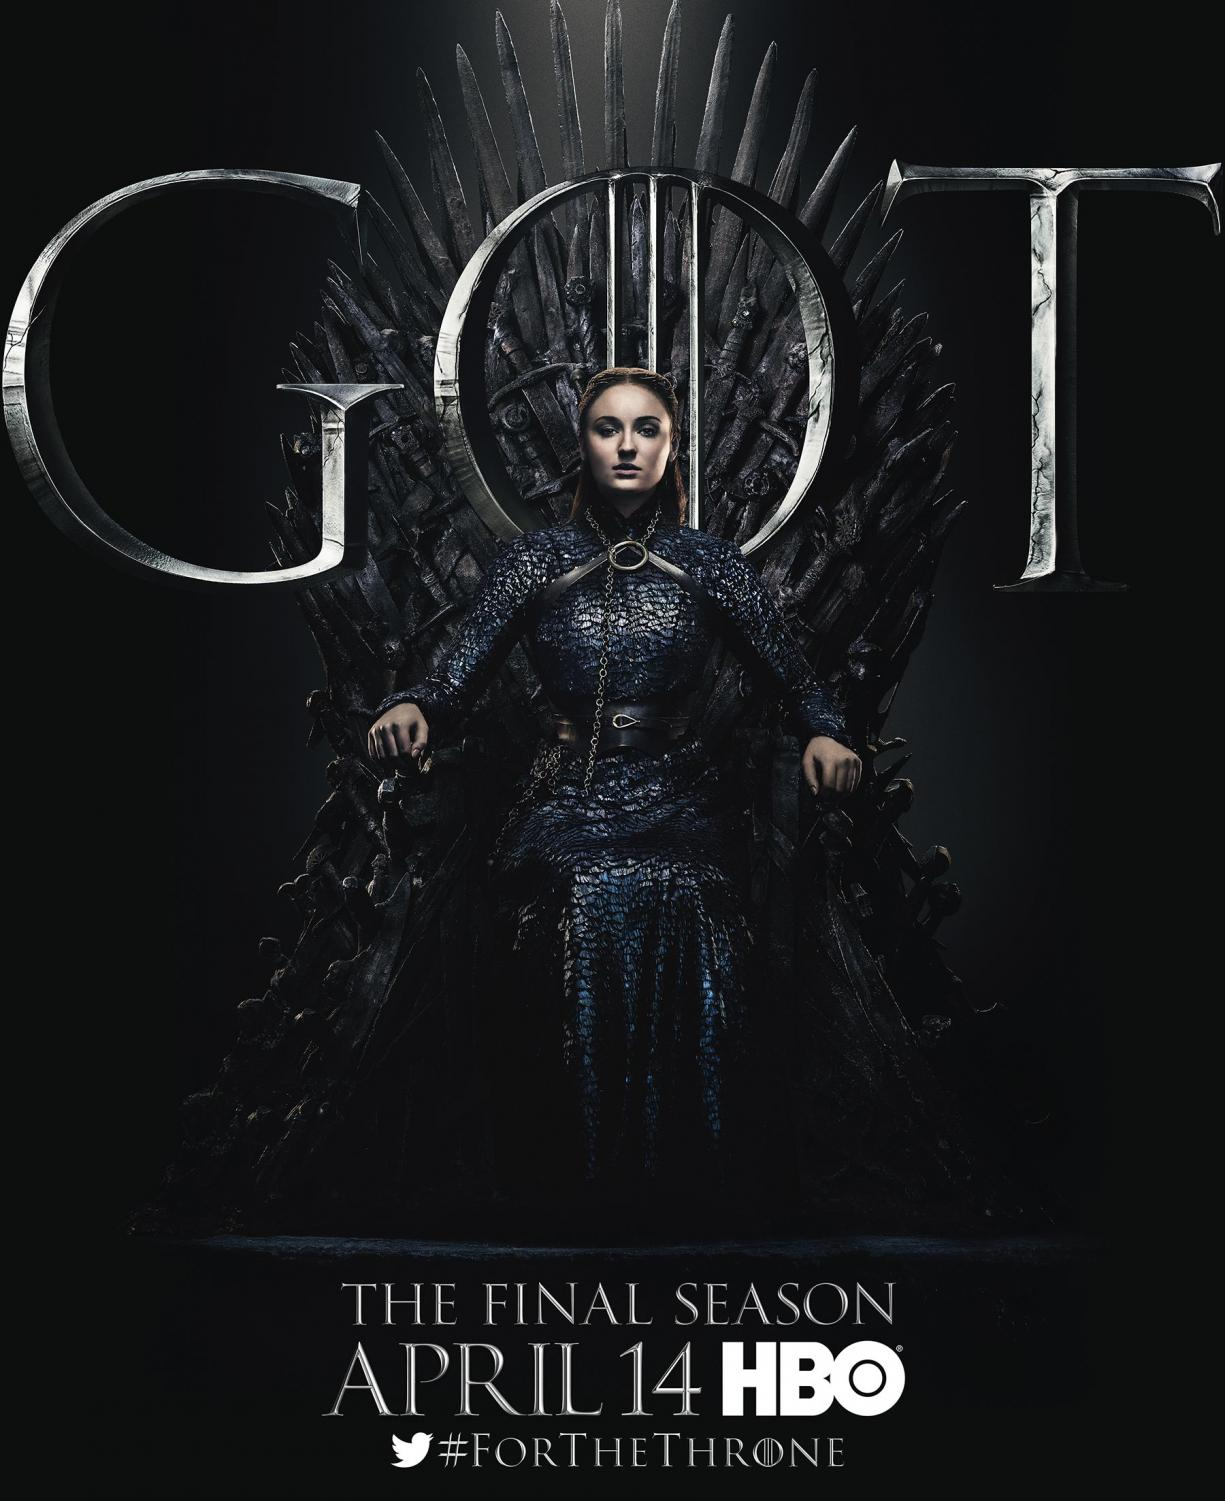 Game of Thrones has long been considered one of the top shows on television. Winning 239 awards and being nominated for over 700, this is the final season of the fantasy epic.